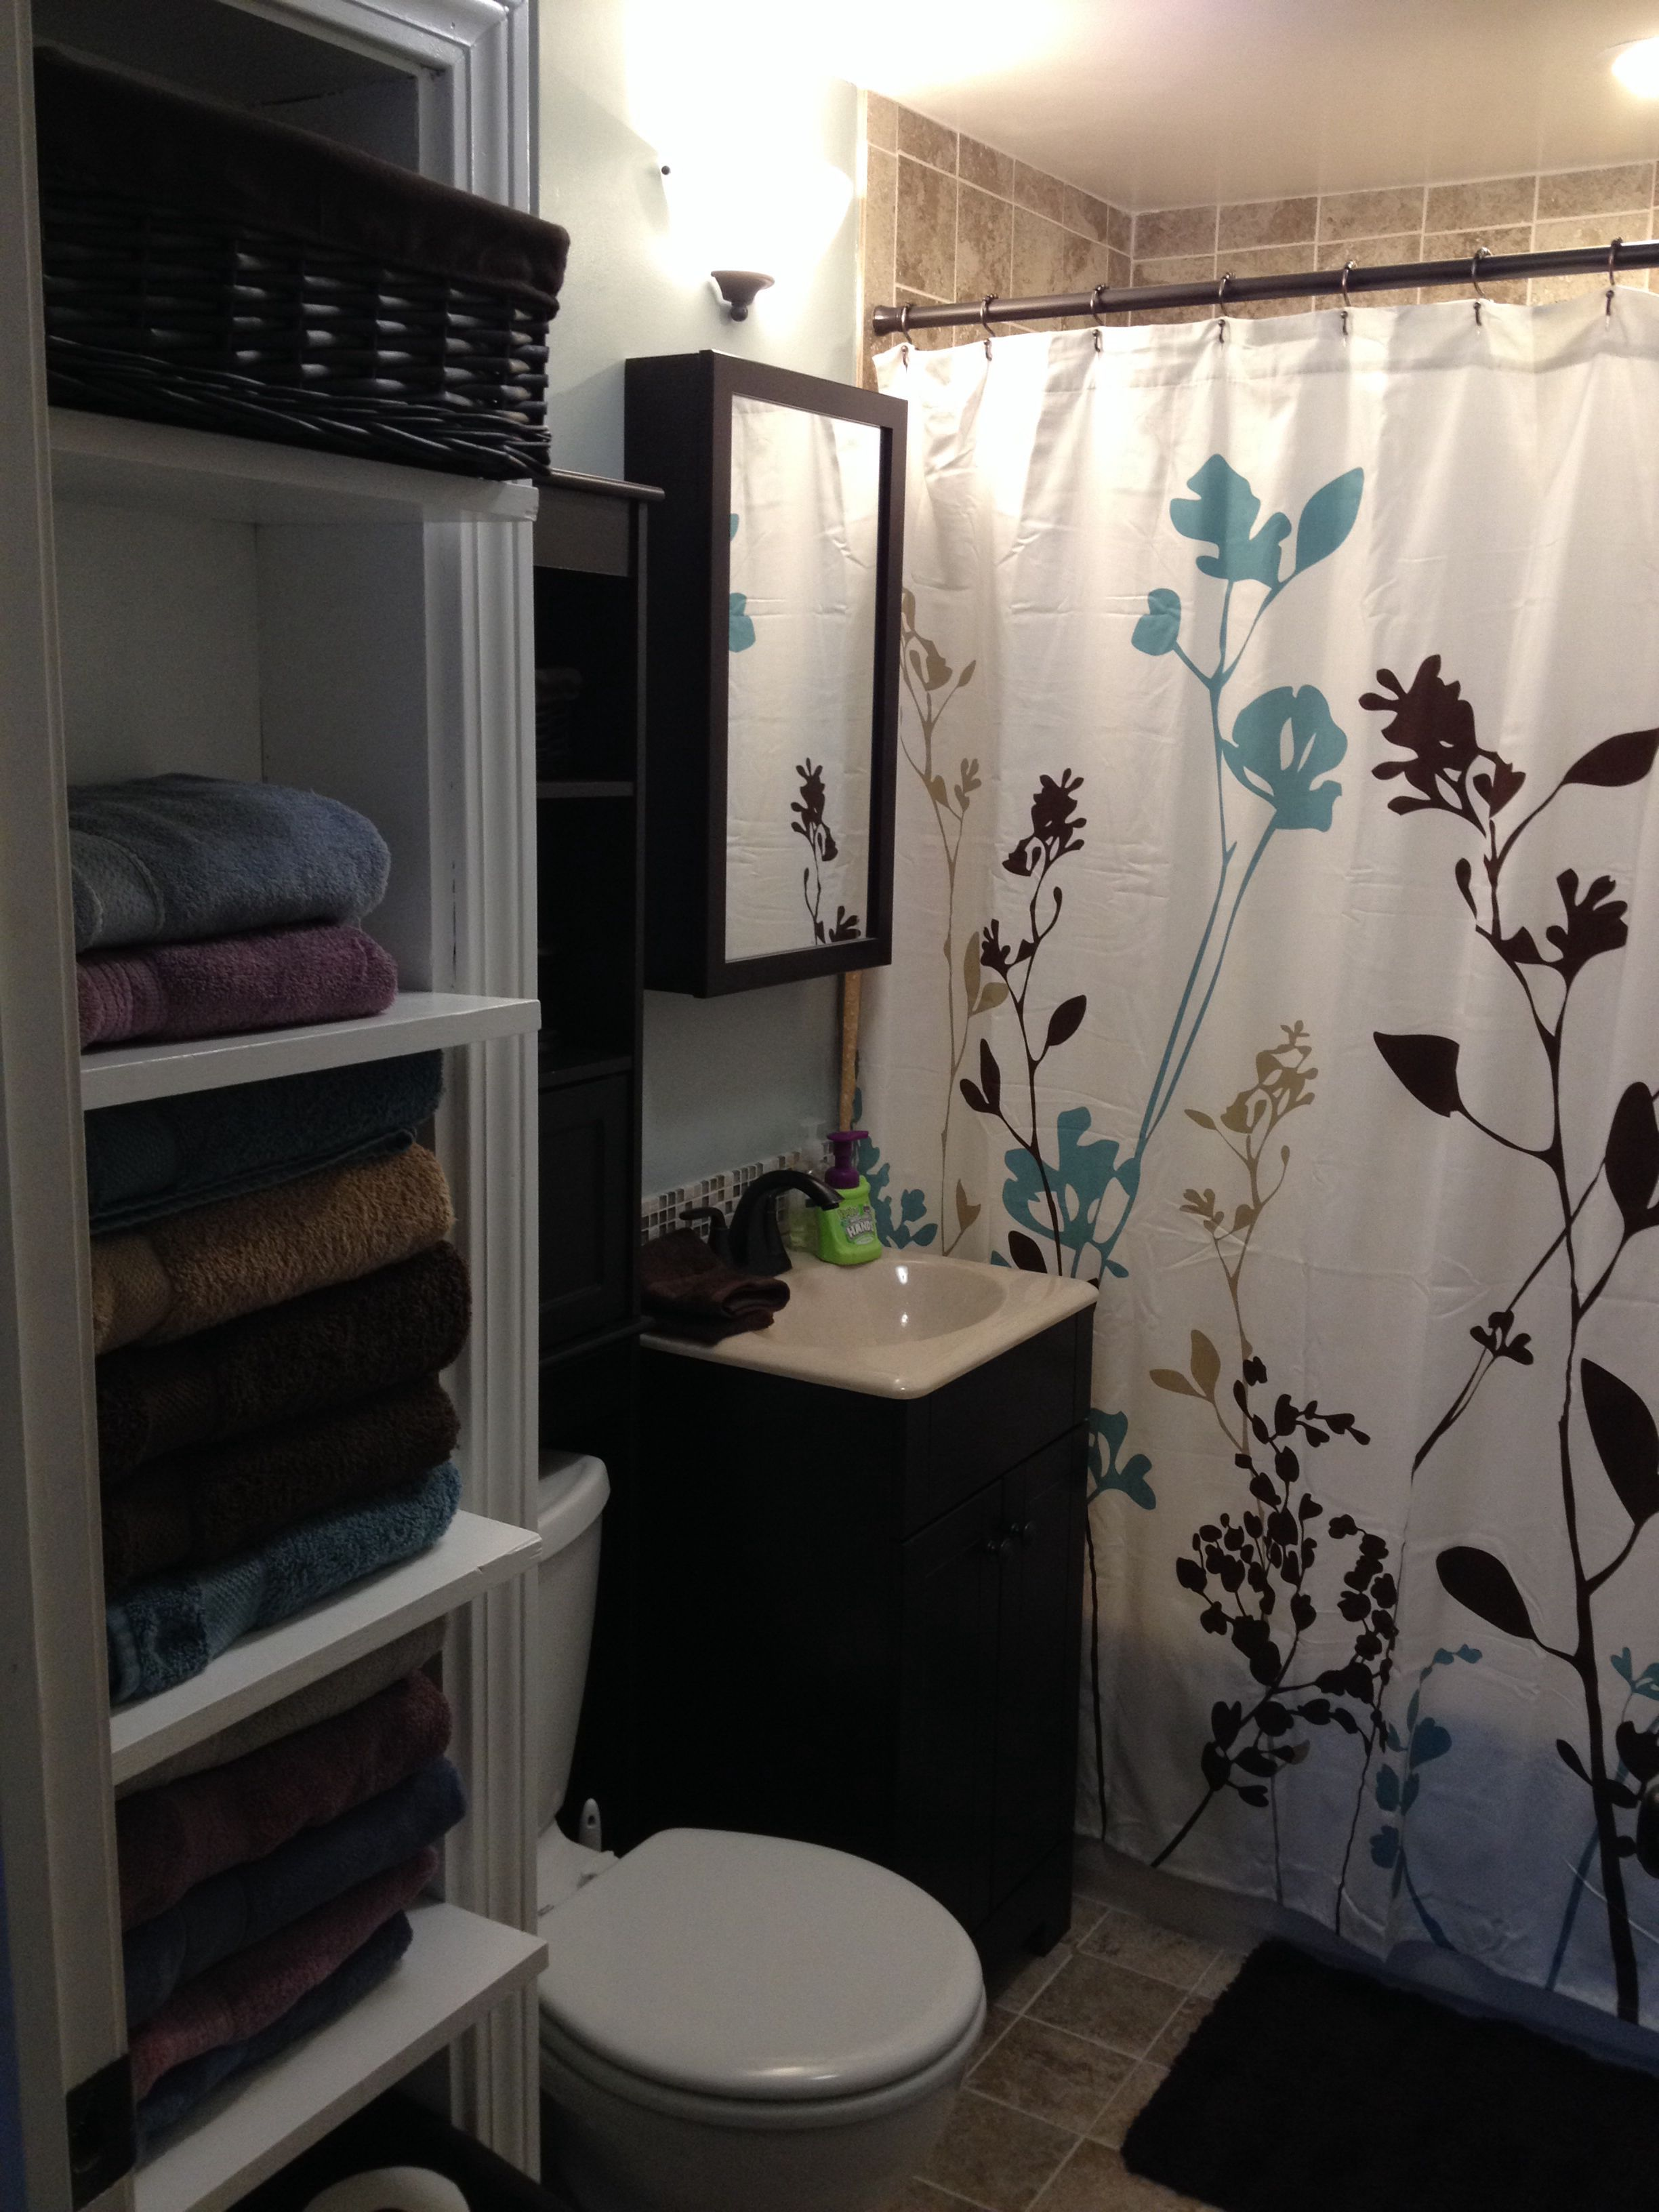 1000 images about bathrooms on pinterest storage ideas for Brown and turquoise bathroom ideas